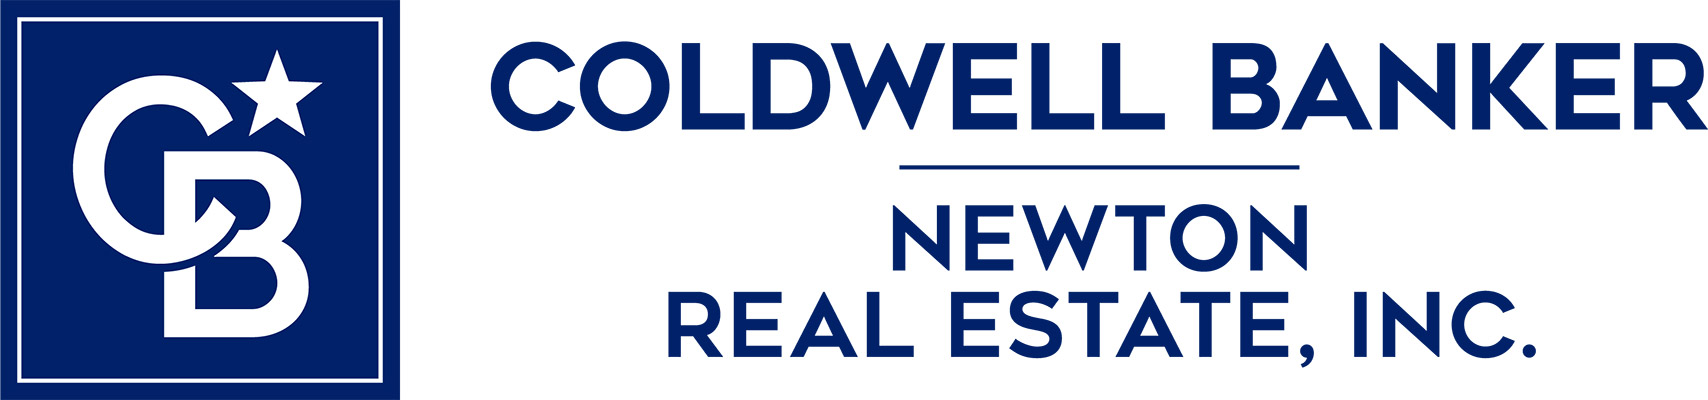 Coldwell Banker Newton Real Estate, Inc LOGO